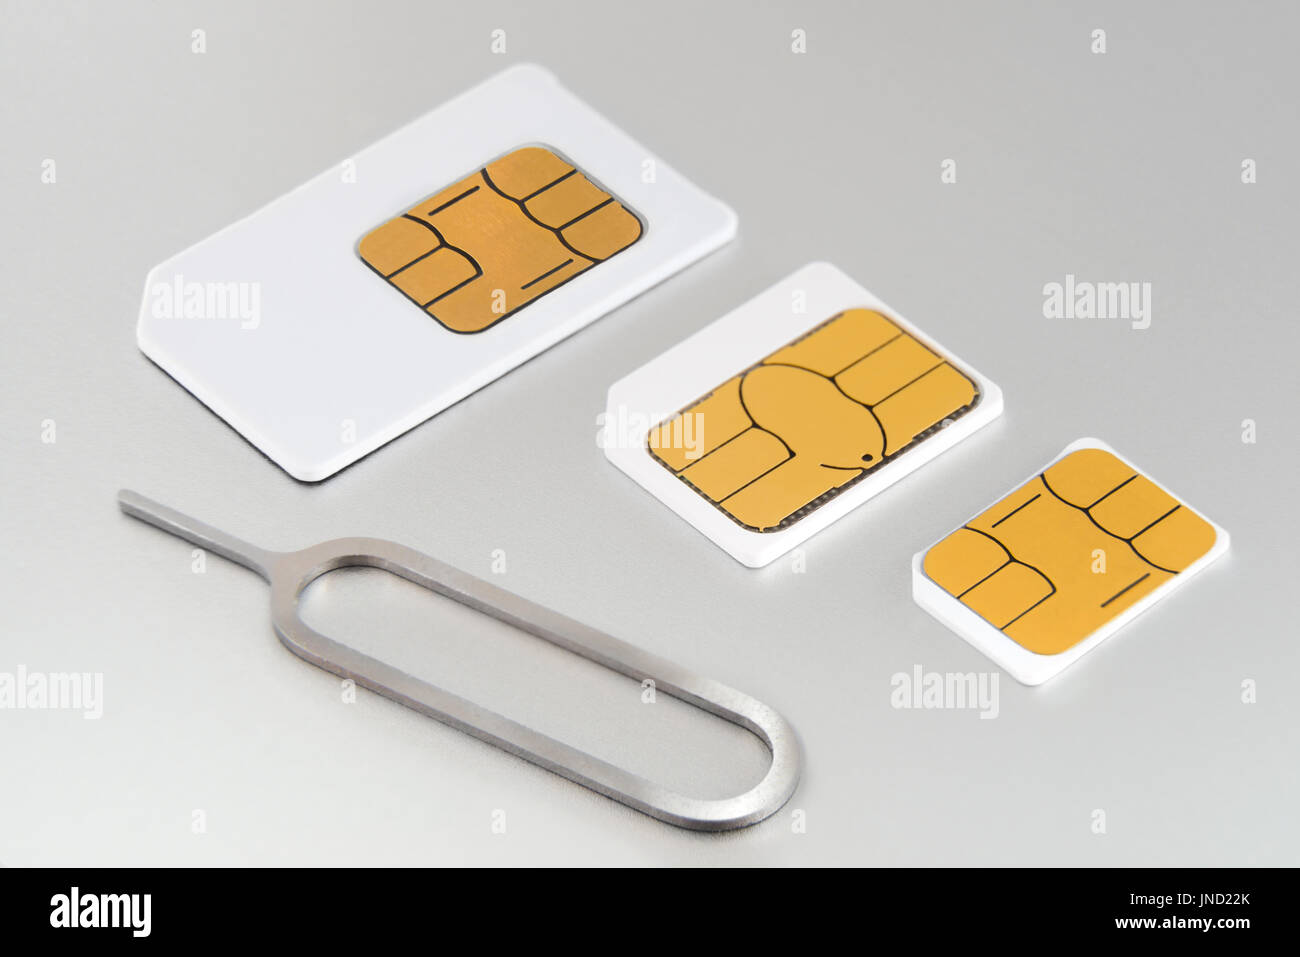 three types of gsm sim cards mini sim micro sim and nano sim stock photo royalty free image. Black Bedroom Furniture Sets. Home Design Ideas